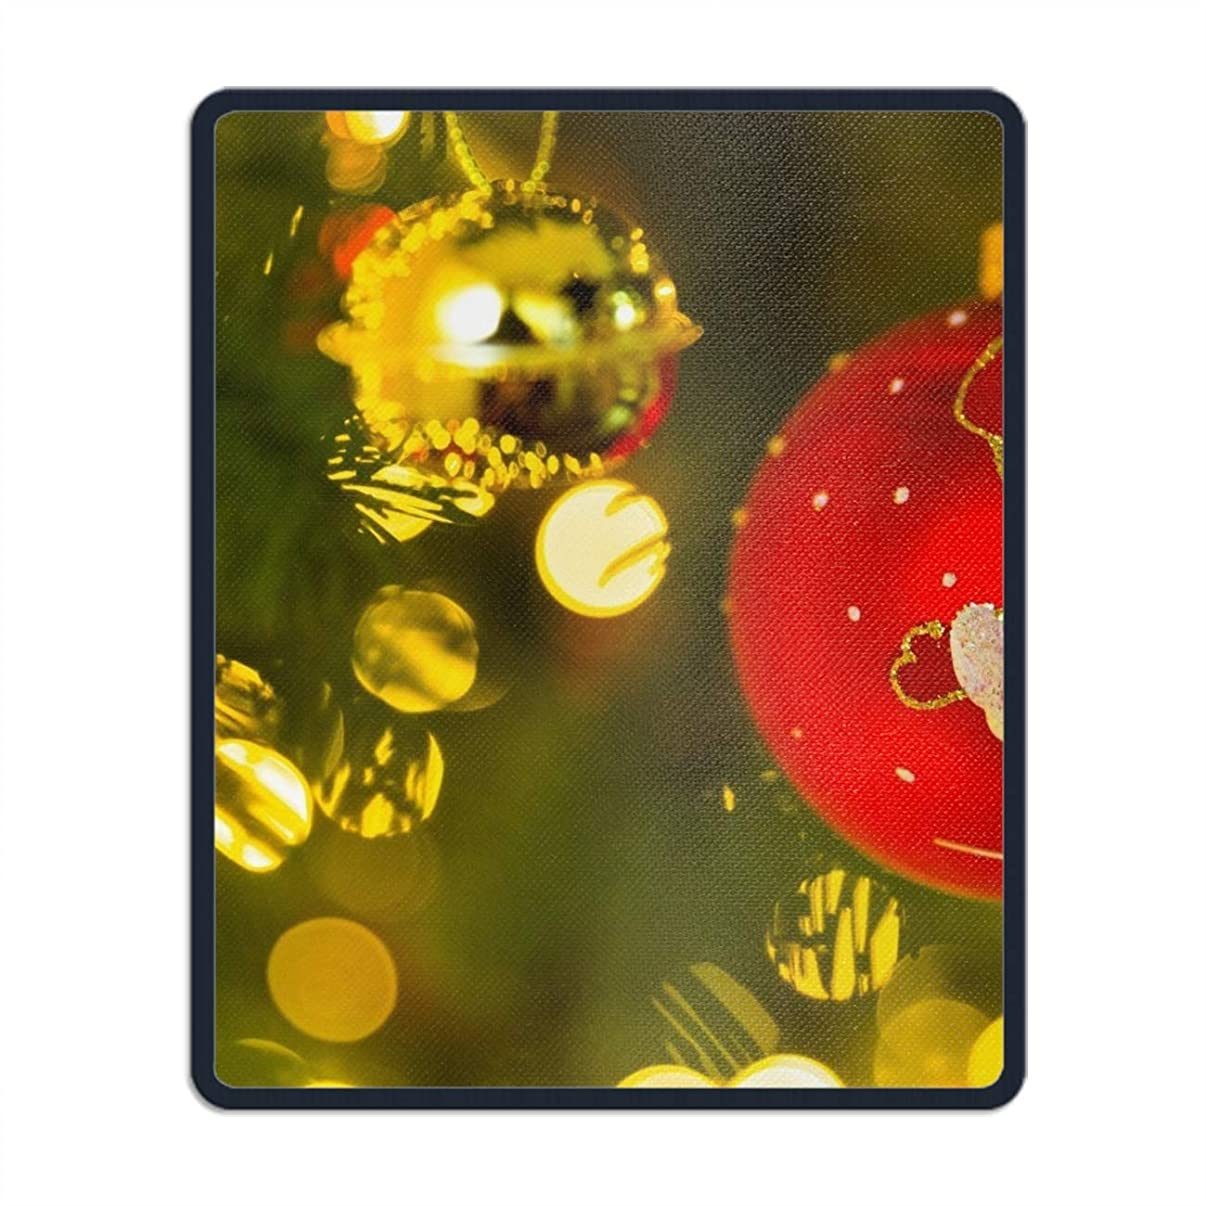 Christmas Ornaments Bauble Santa Mouse Pad Printed Non-Slip Rubber Gaming Mouse Pad Mat for Laptop Computer